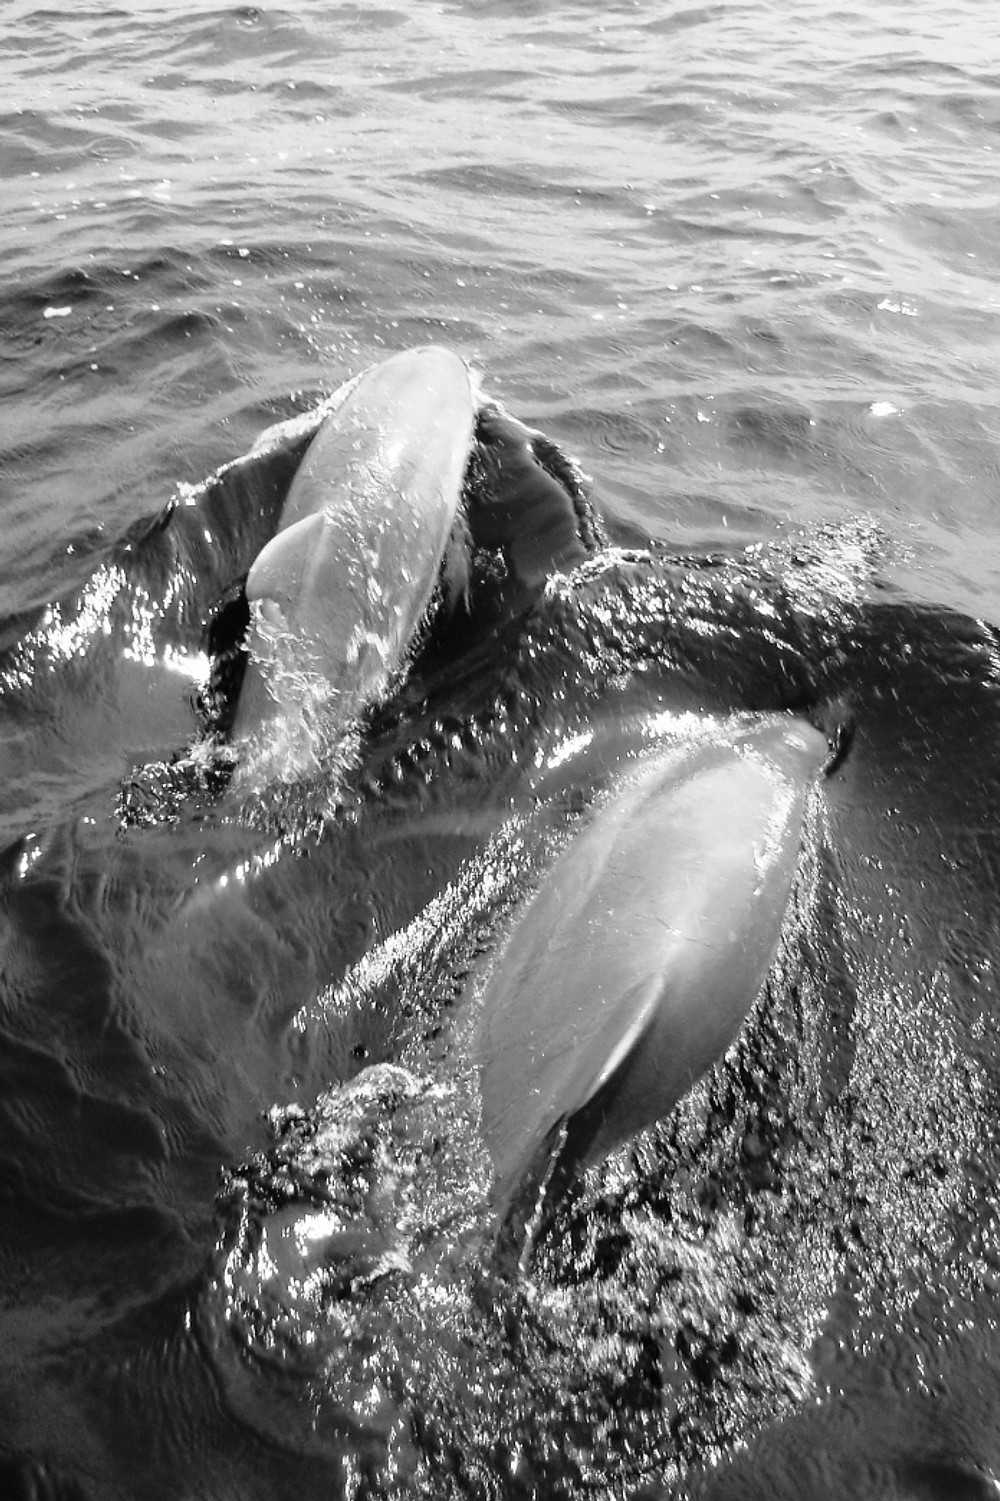 Boating with Dolphins